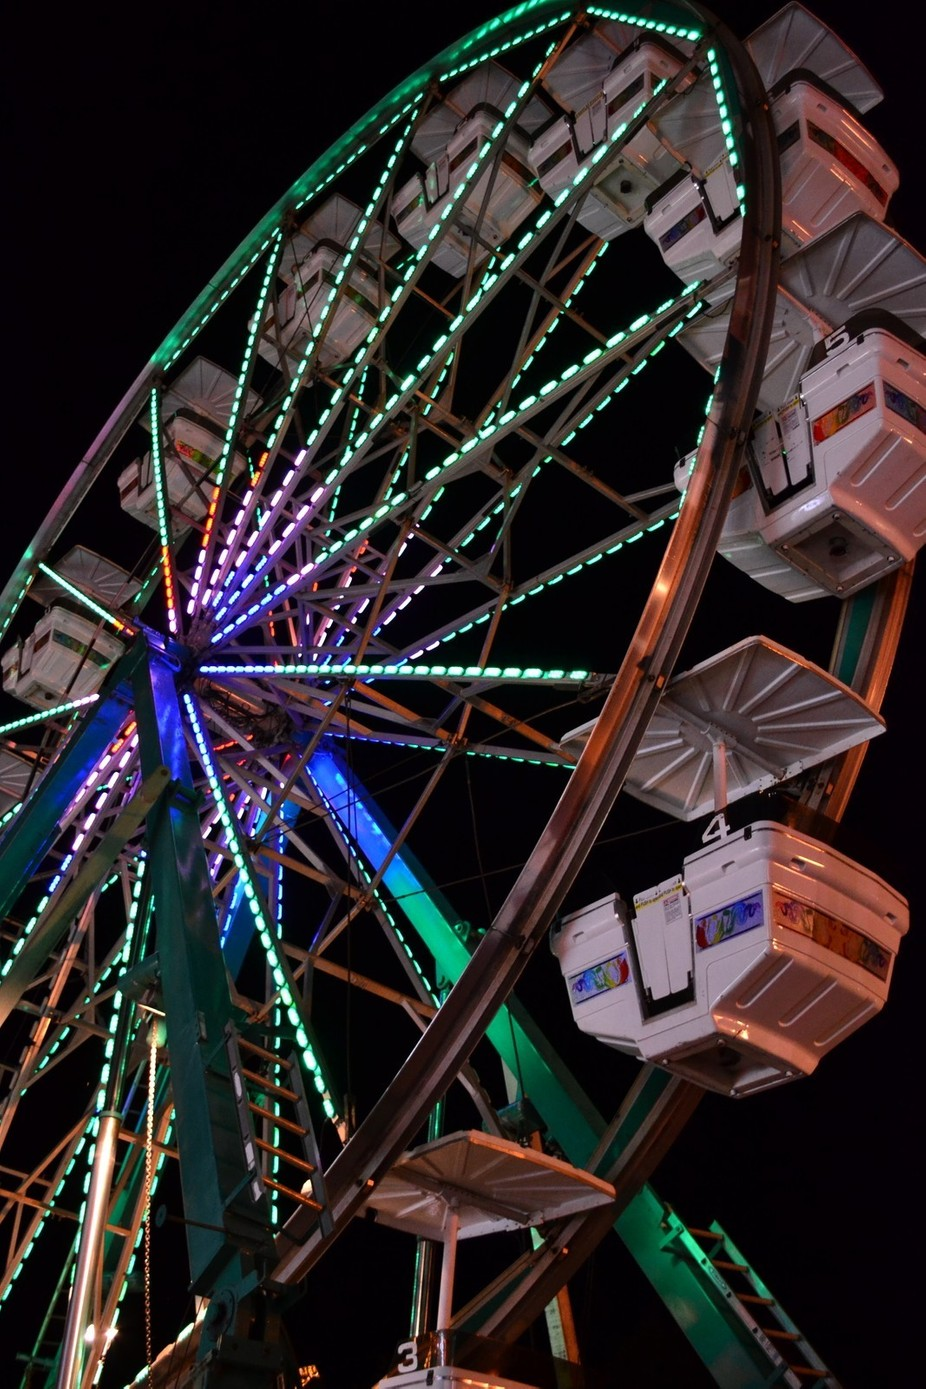 Shot on my way out of the carnival. Straight out of camera